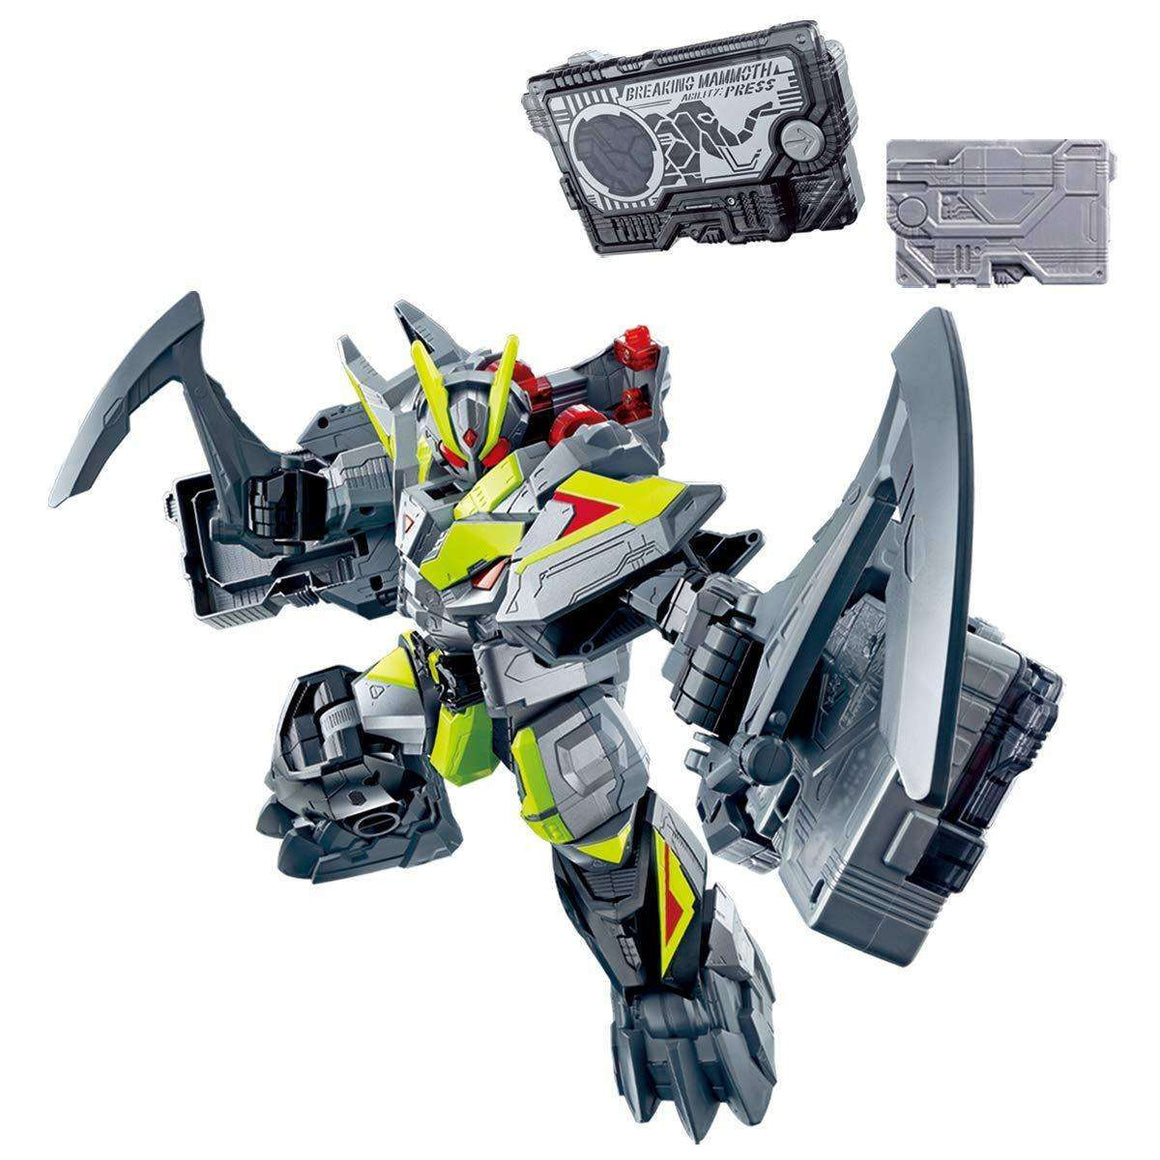 CSTOYS INTERNATIONAL:[BOXED] Kamen Rider 01: DX Breaking Mammoth & Breaking Mammoth Progrise Key